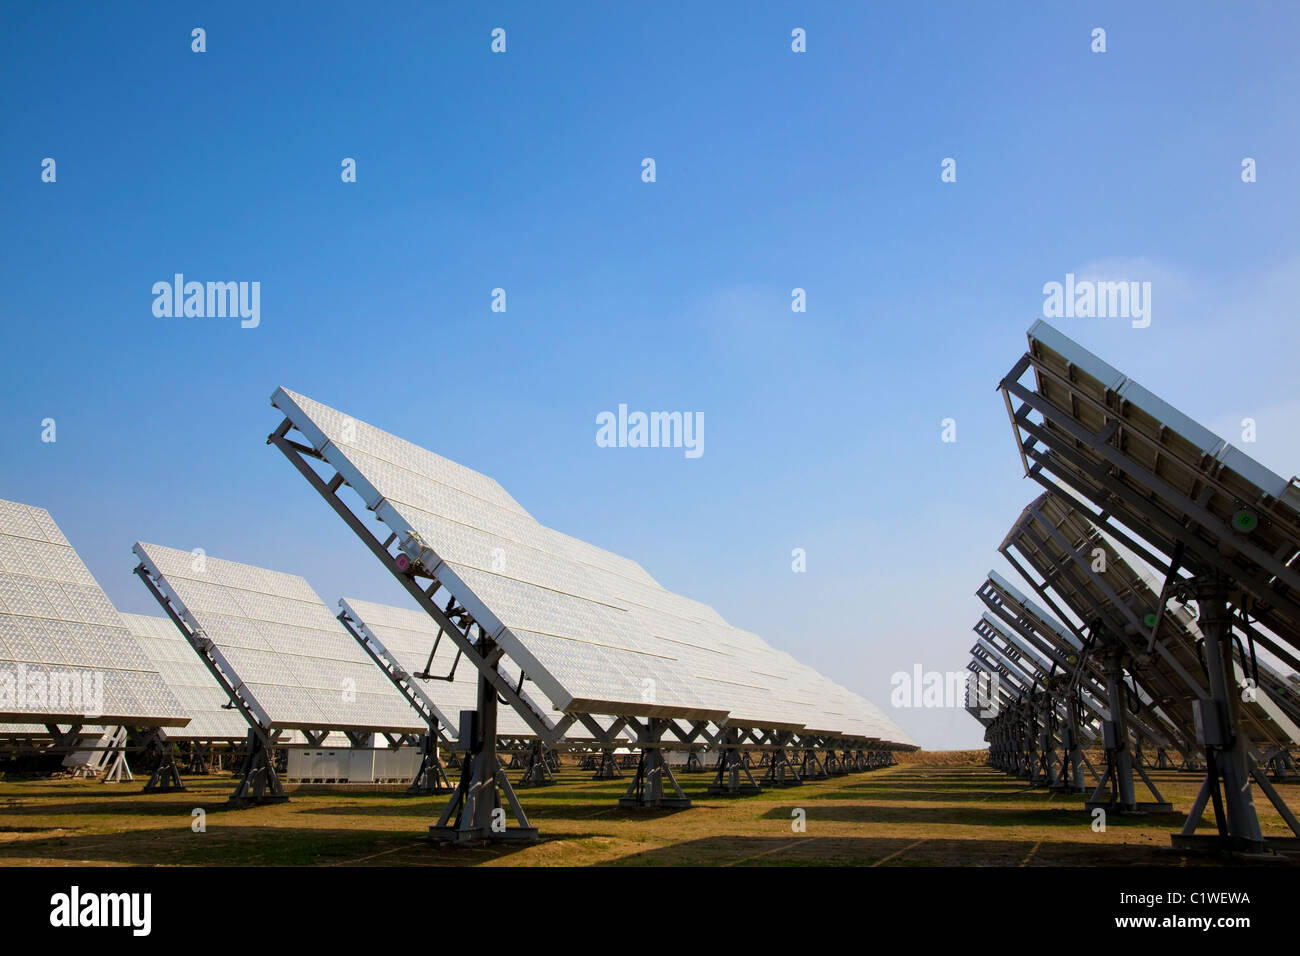 A field of photovoltaic solar panels providing green energy - Stock Image